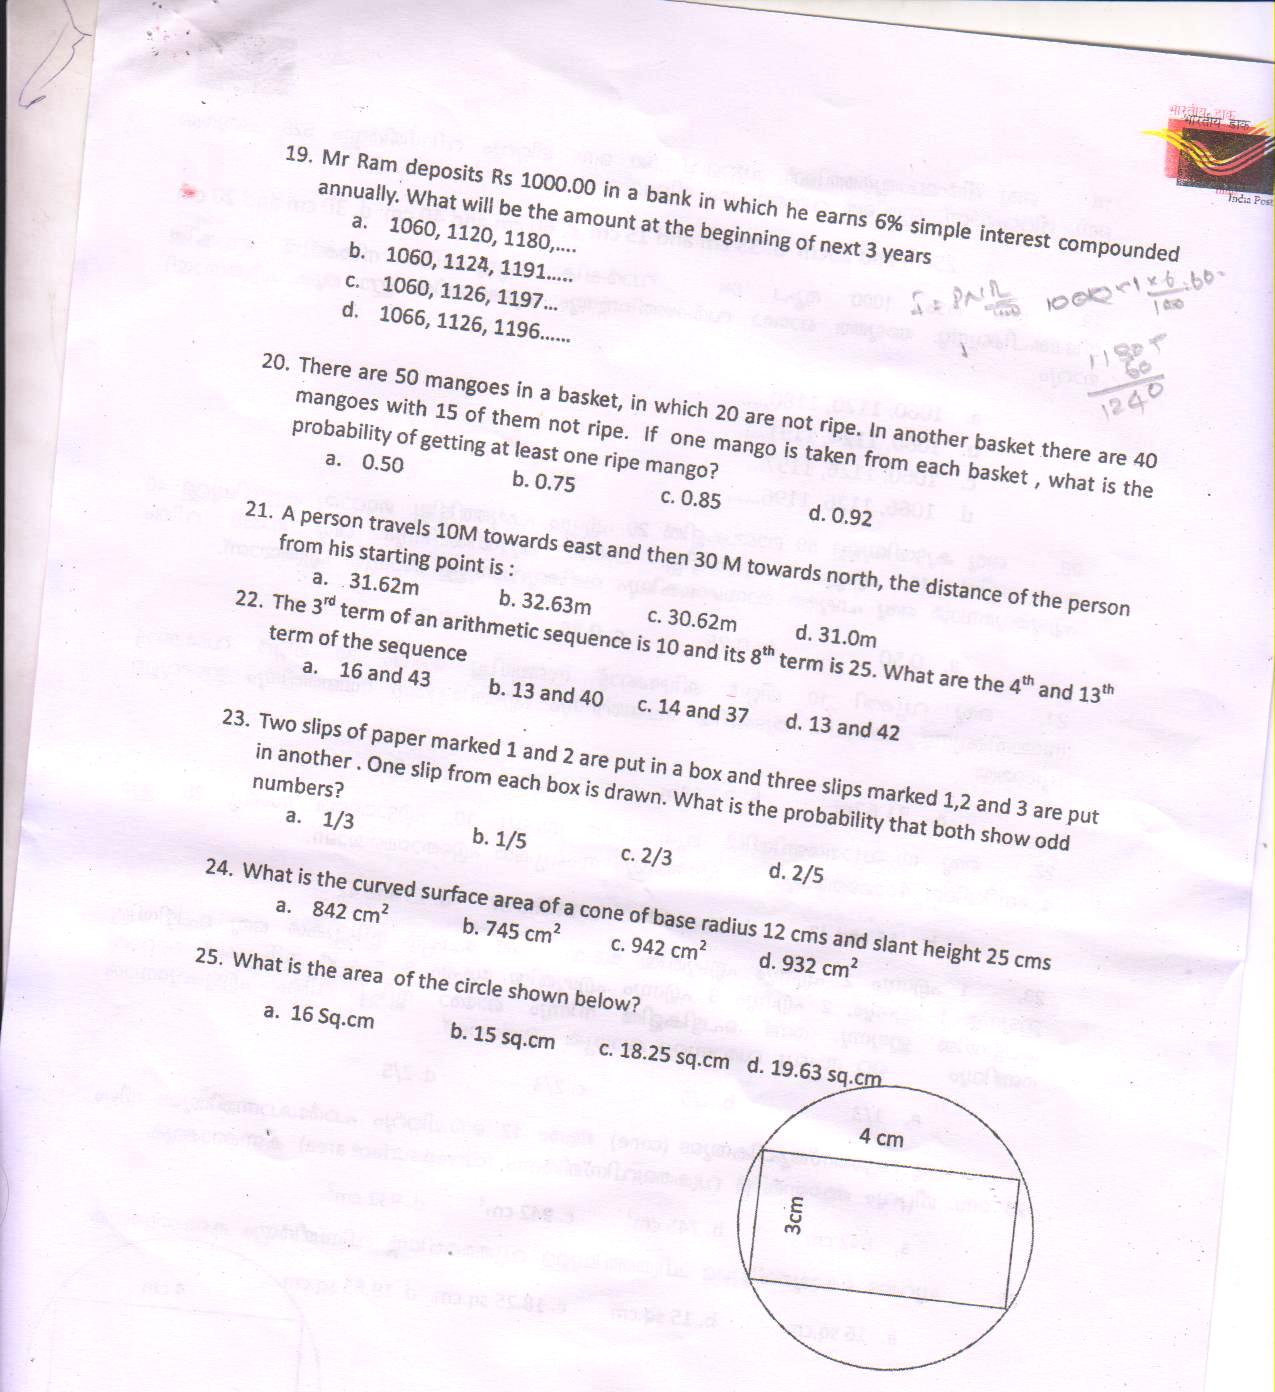 national fedaration of postal employees postman mts gr d eluru  postman mail guard limited departmental competitive examination question paper kerala circle